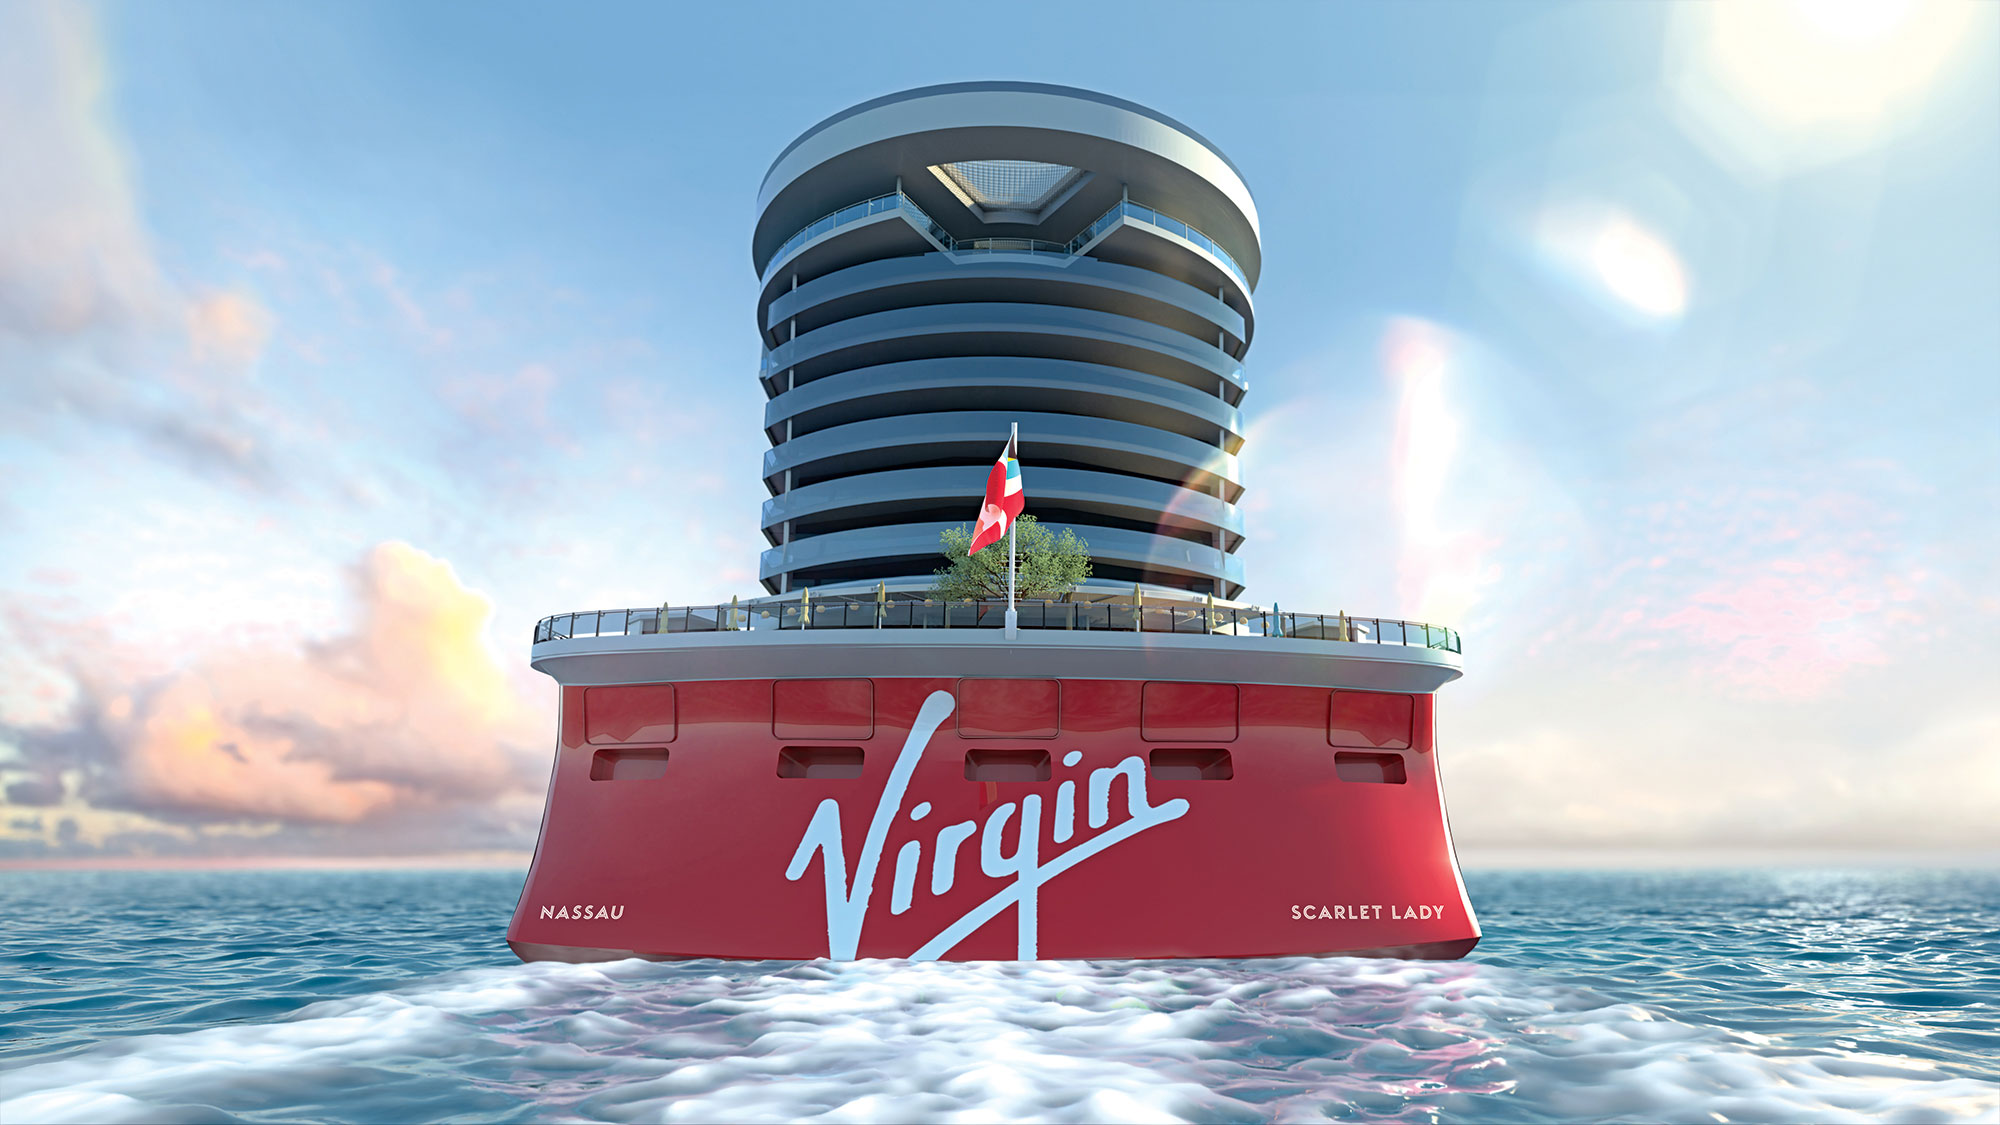 Richard Branson shares images of Virgin Voyages cruise liner